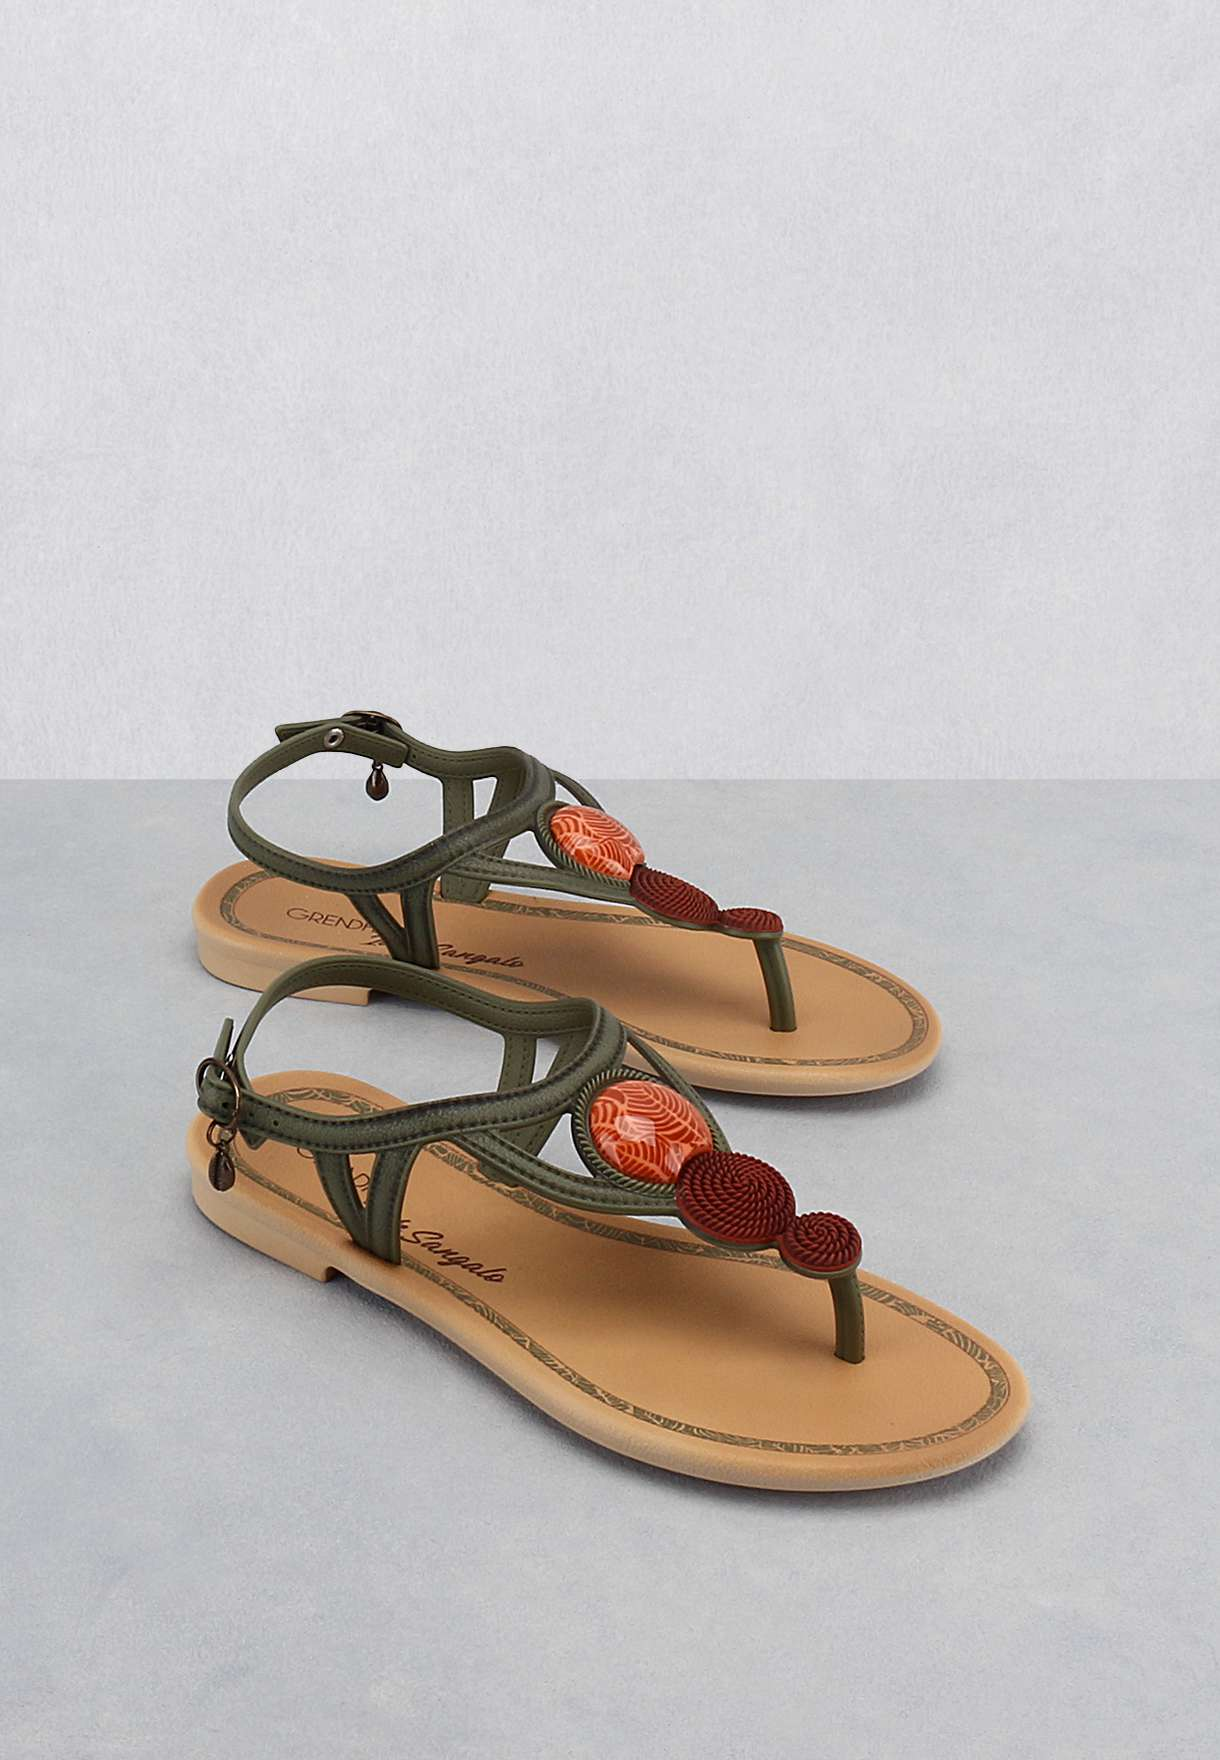 IS Axe Sandal II